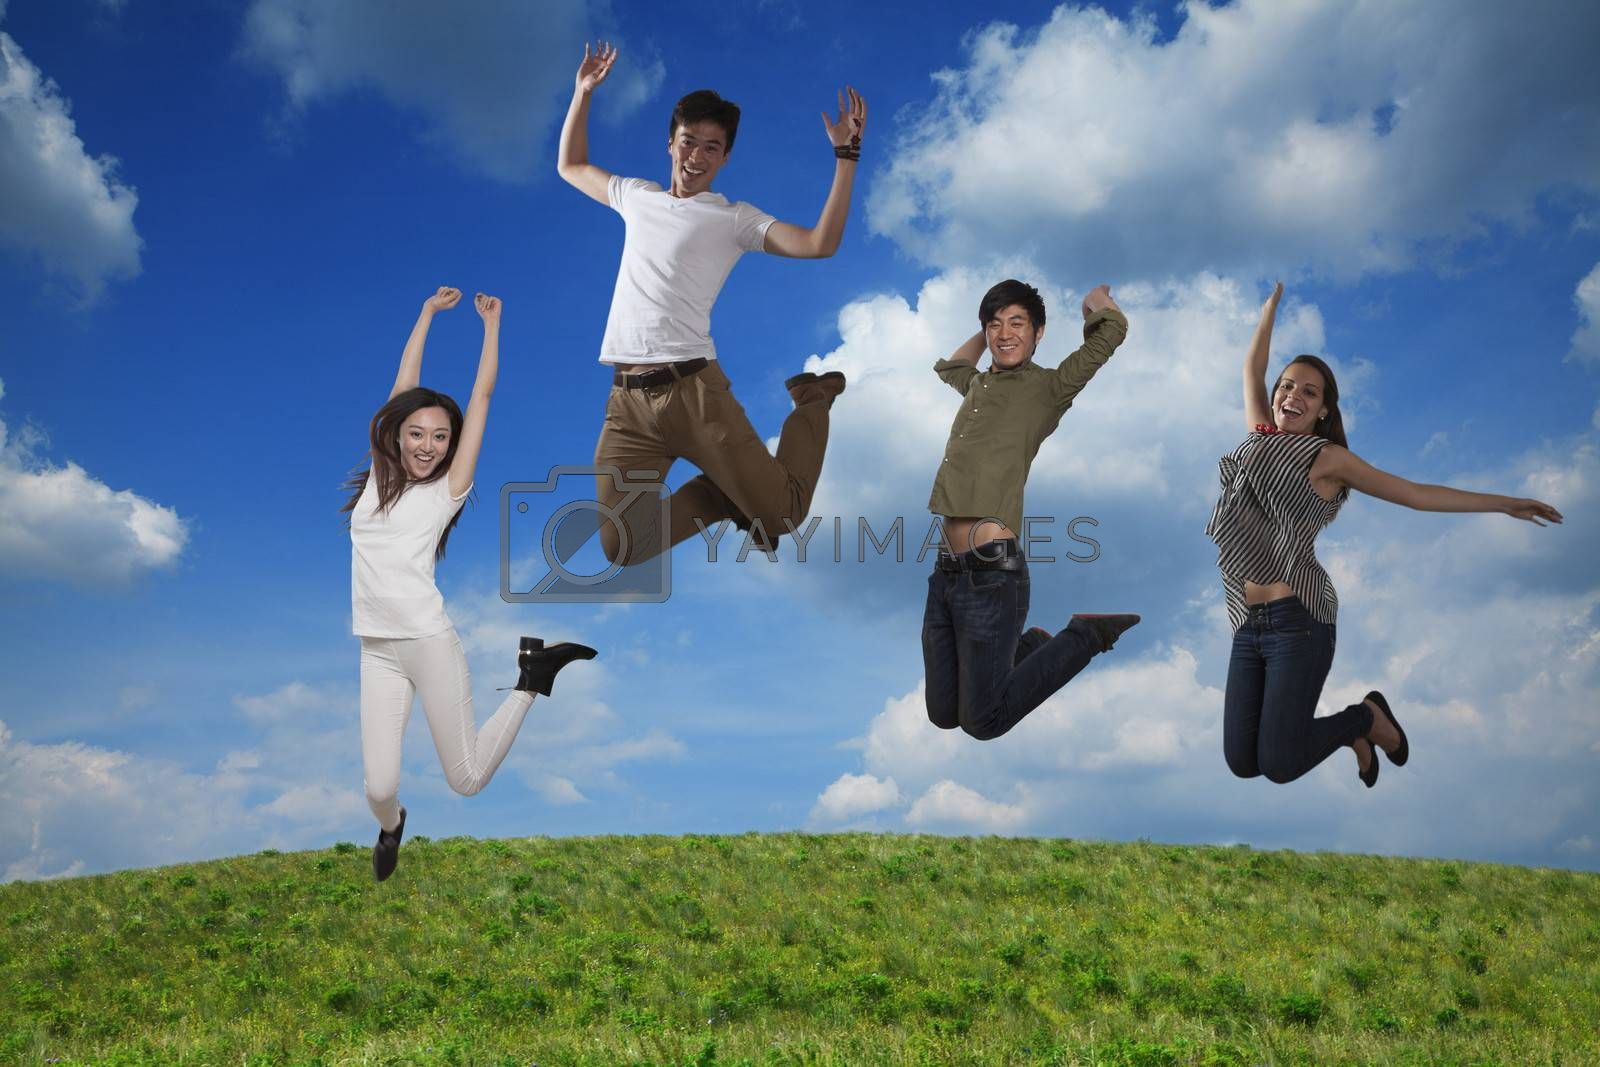 Four smiling friends jumping in mid-air, sky and cloud background